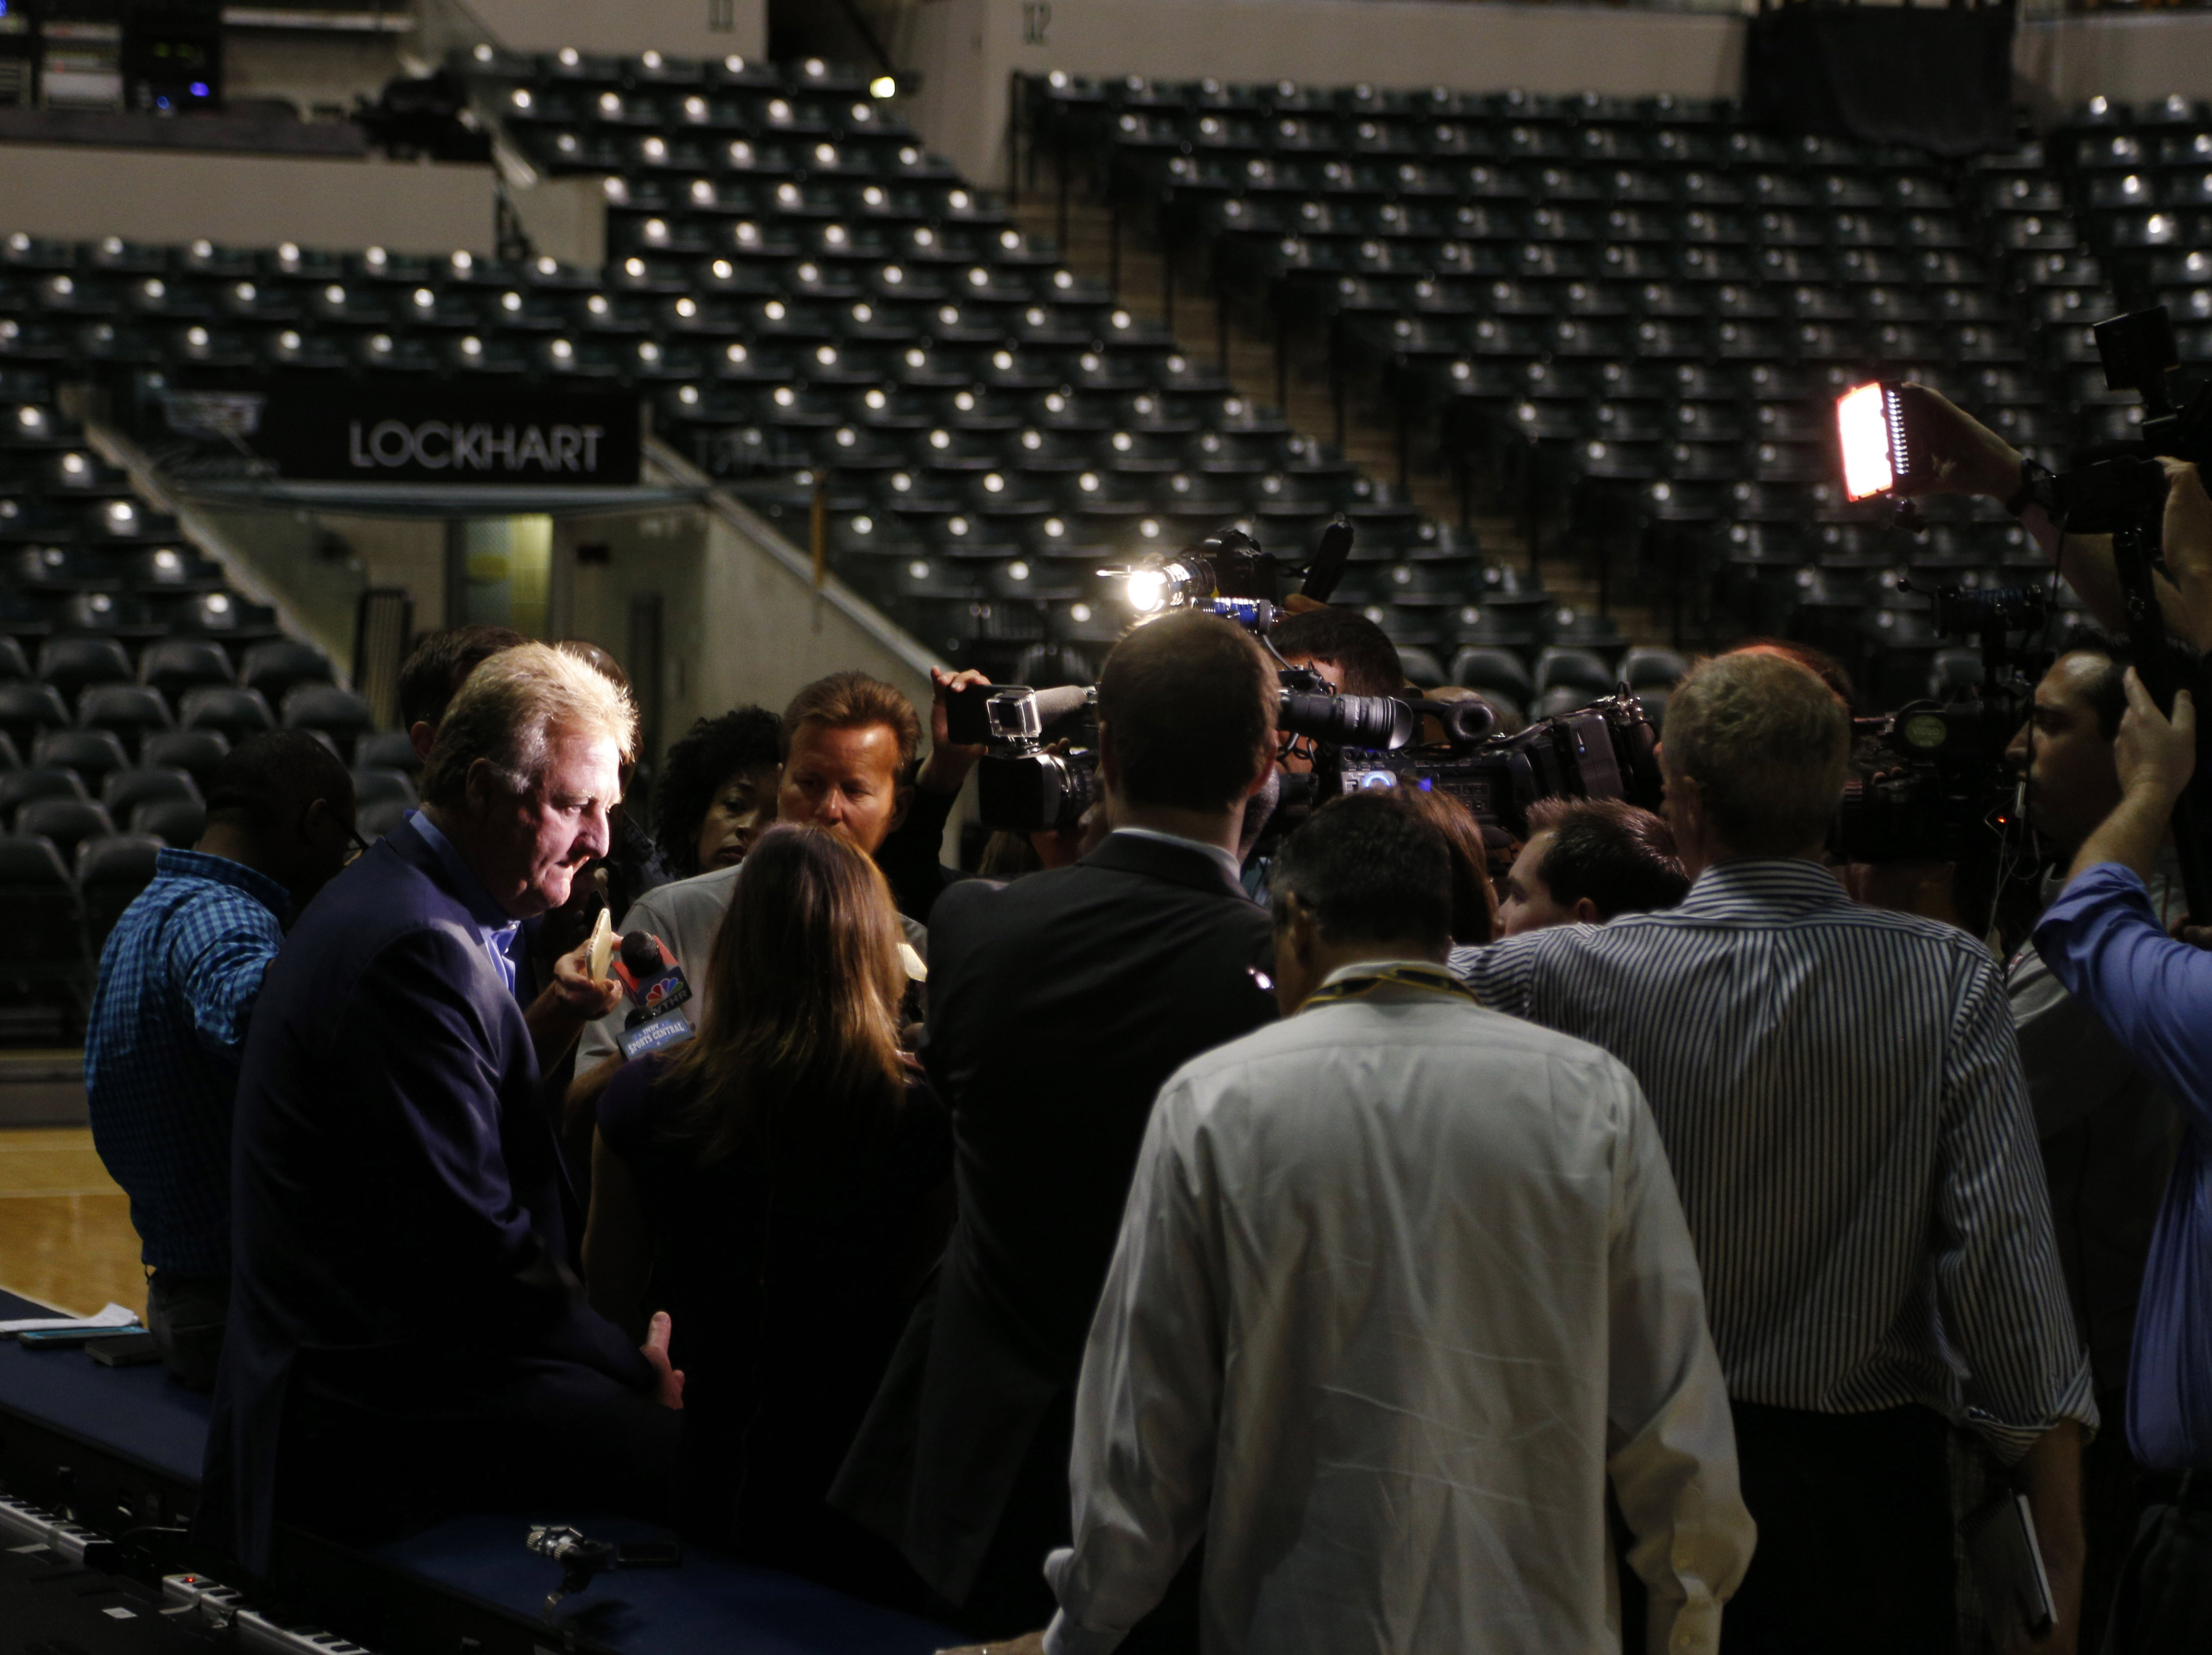 8832186-nba-indiana-pacers-media-day